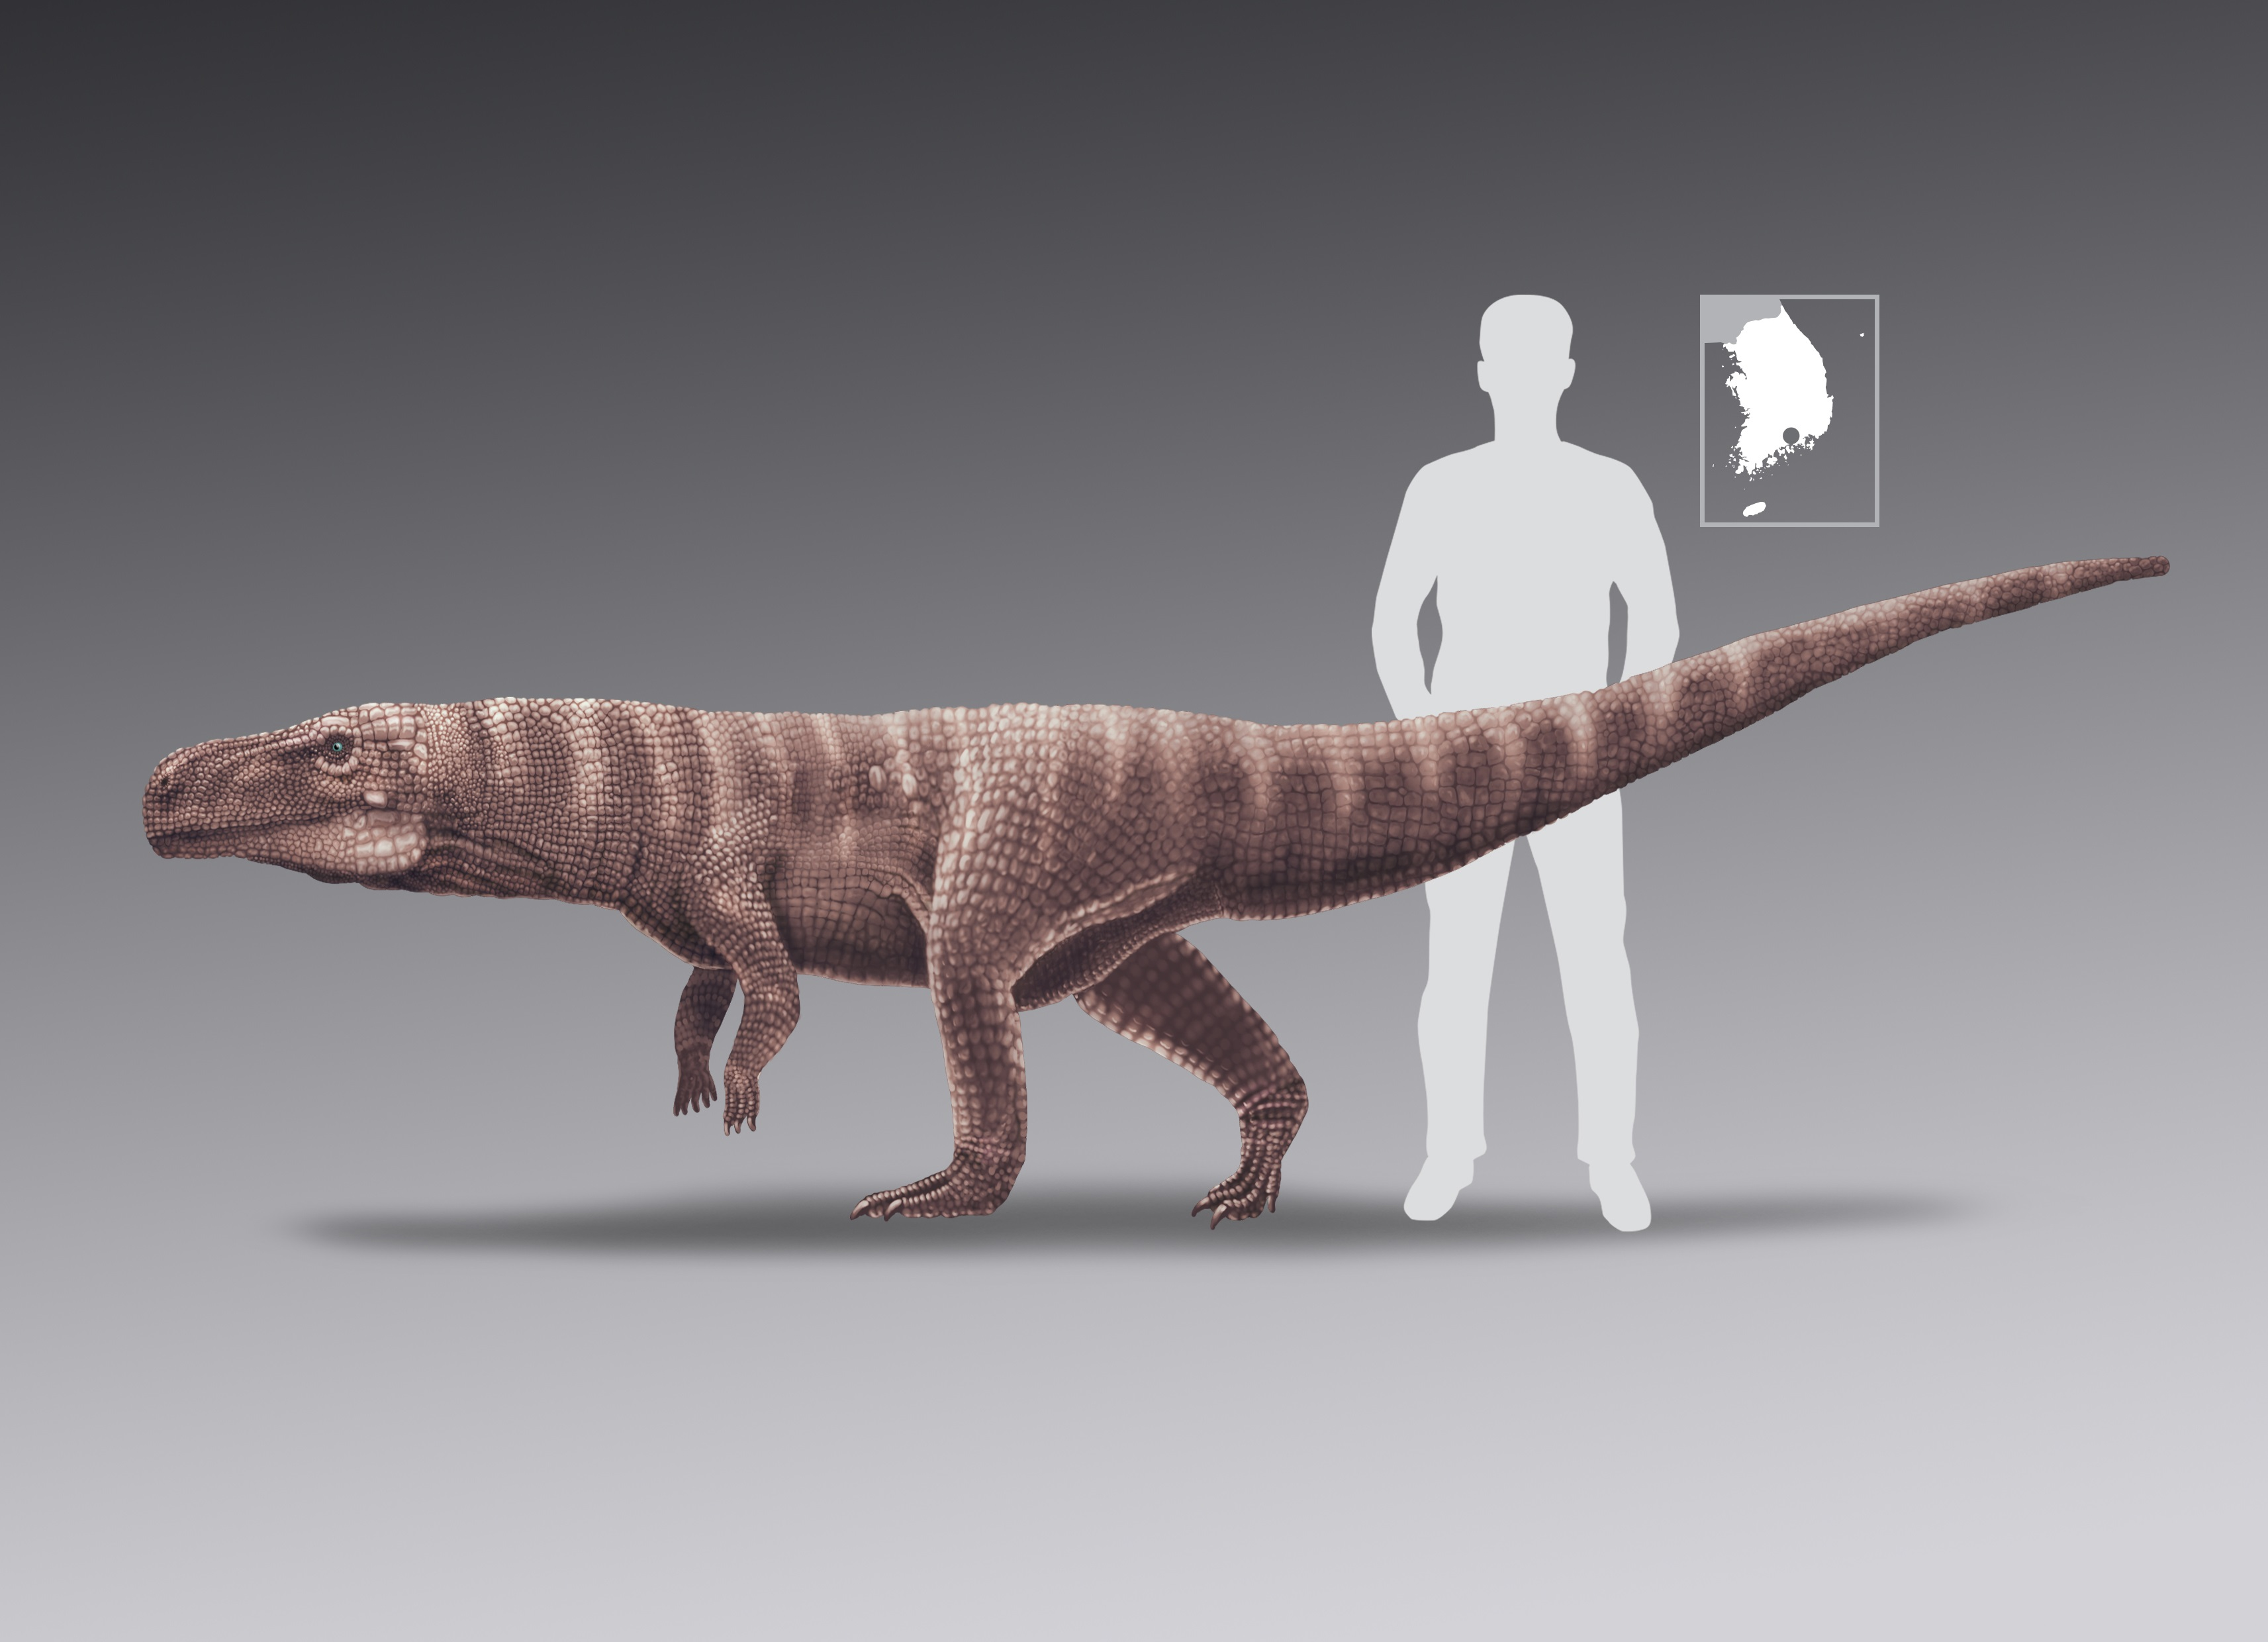 An artist's impression of an ancient crocodile species that walked on two hind legs